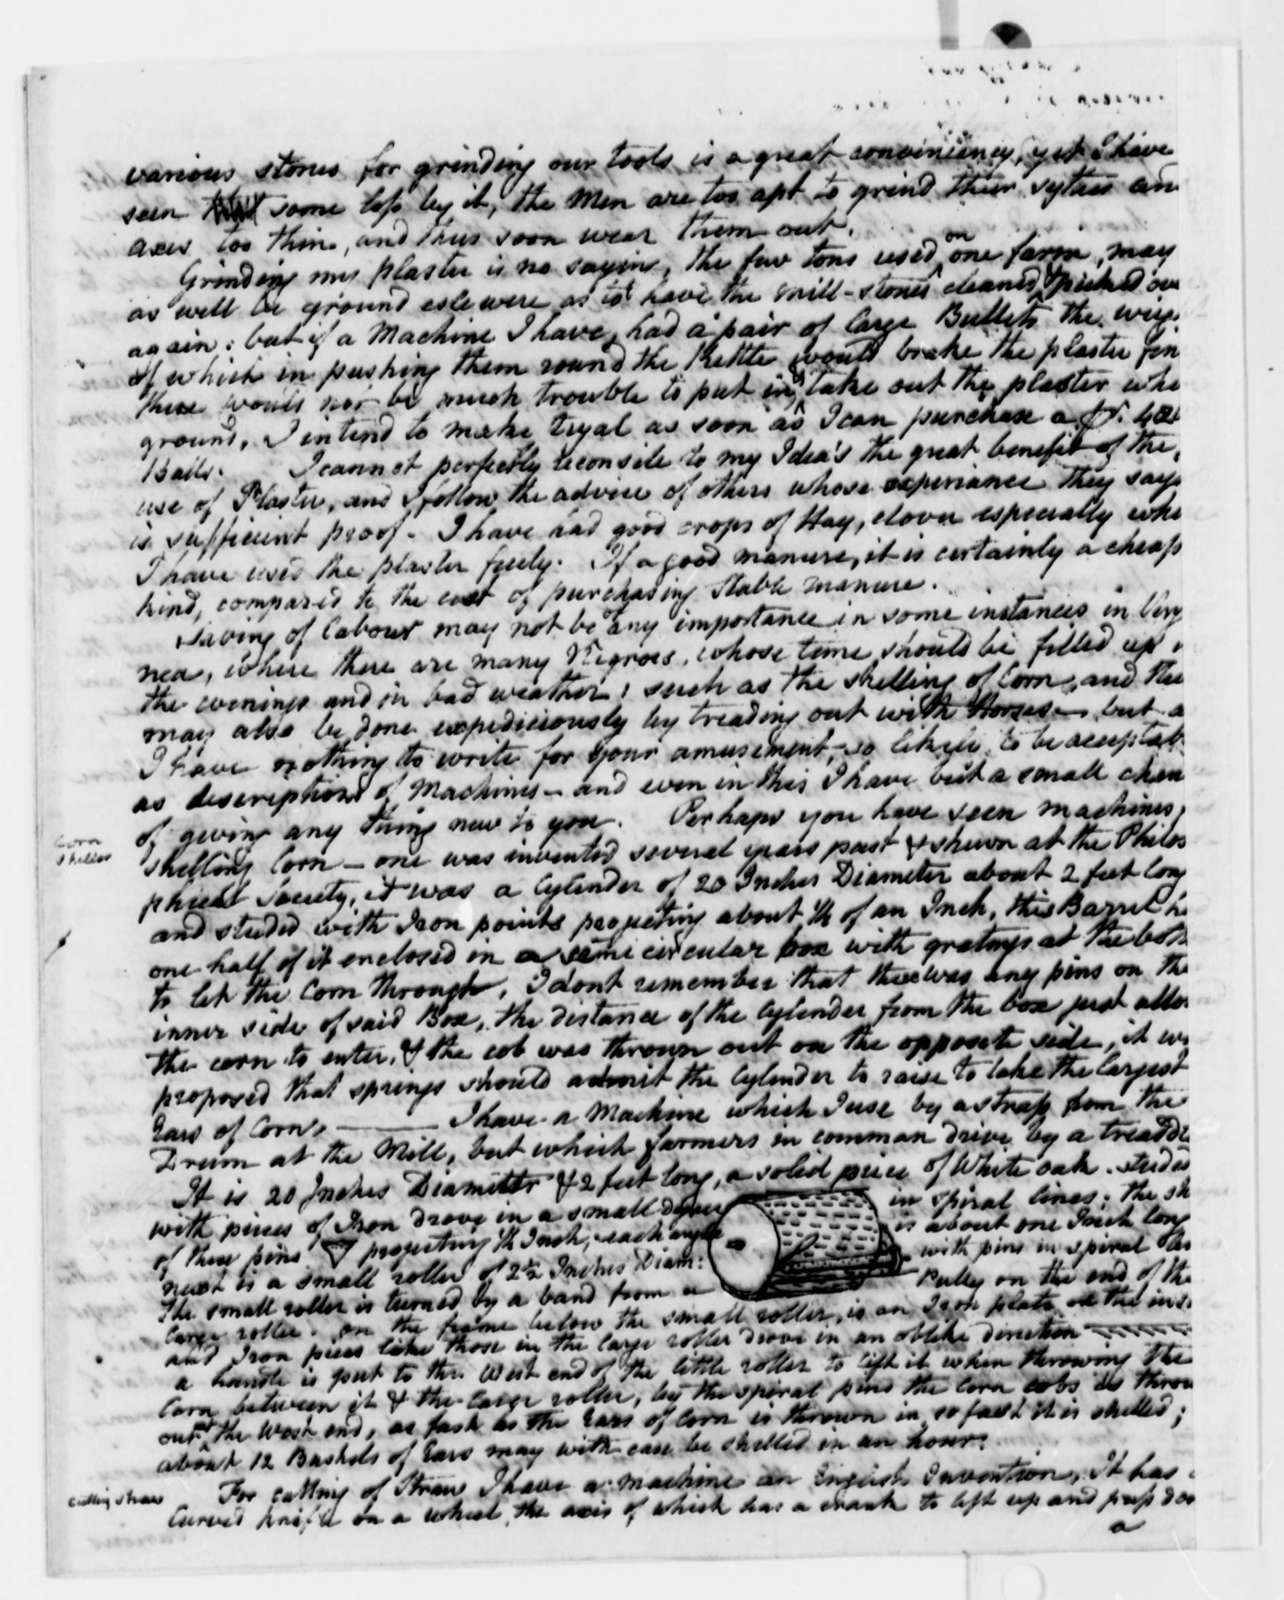 Charles Willson Peale to Thomas Jefferson, December 28, 1813, with Drawings